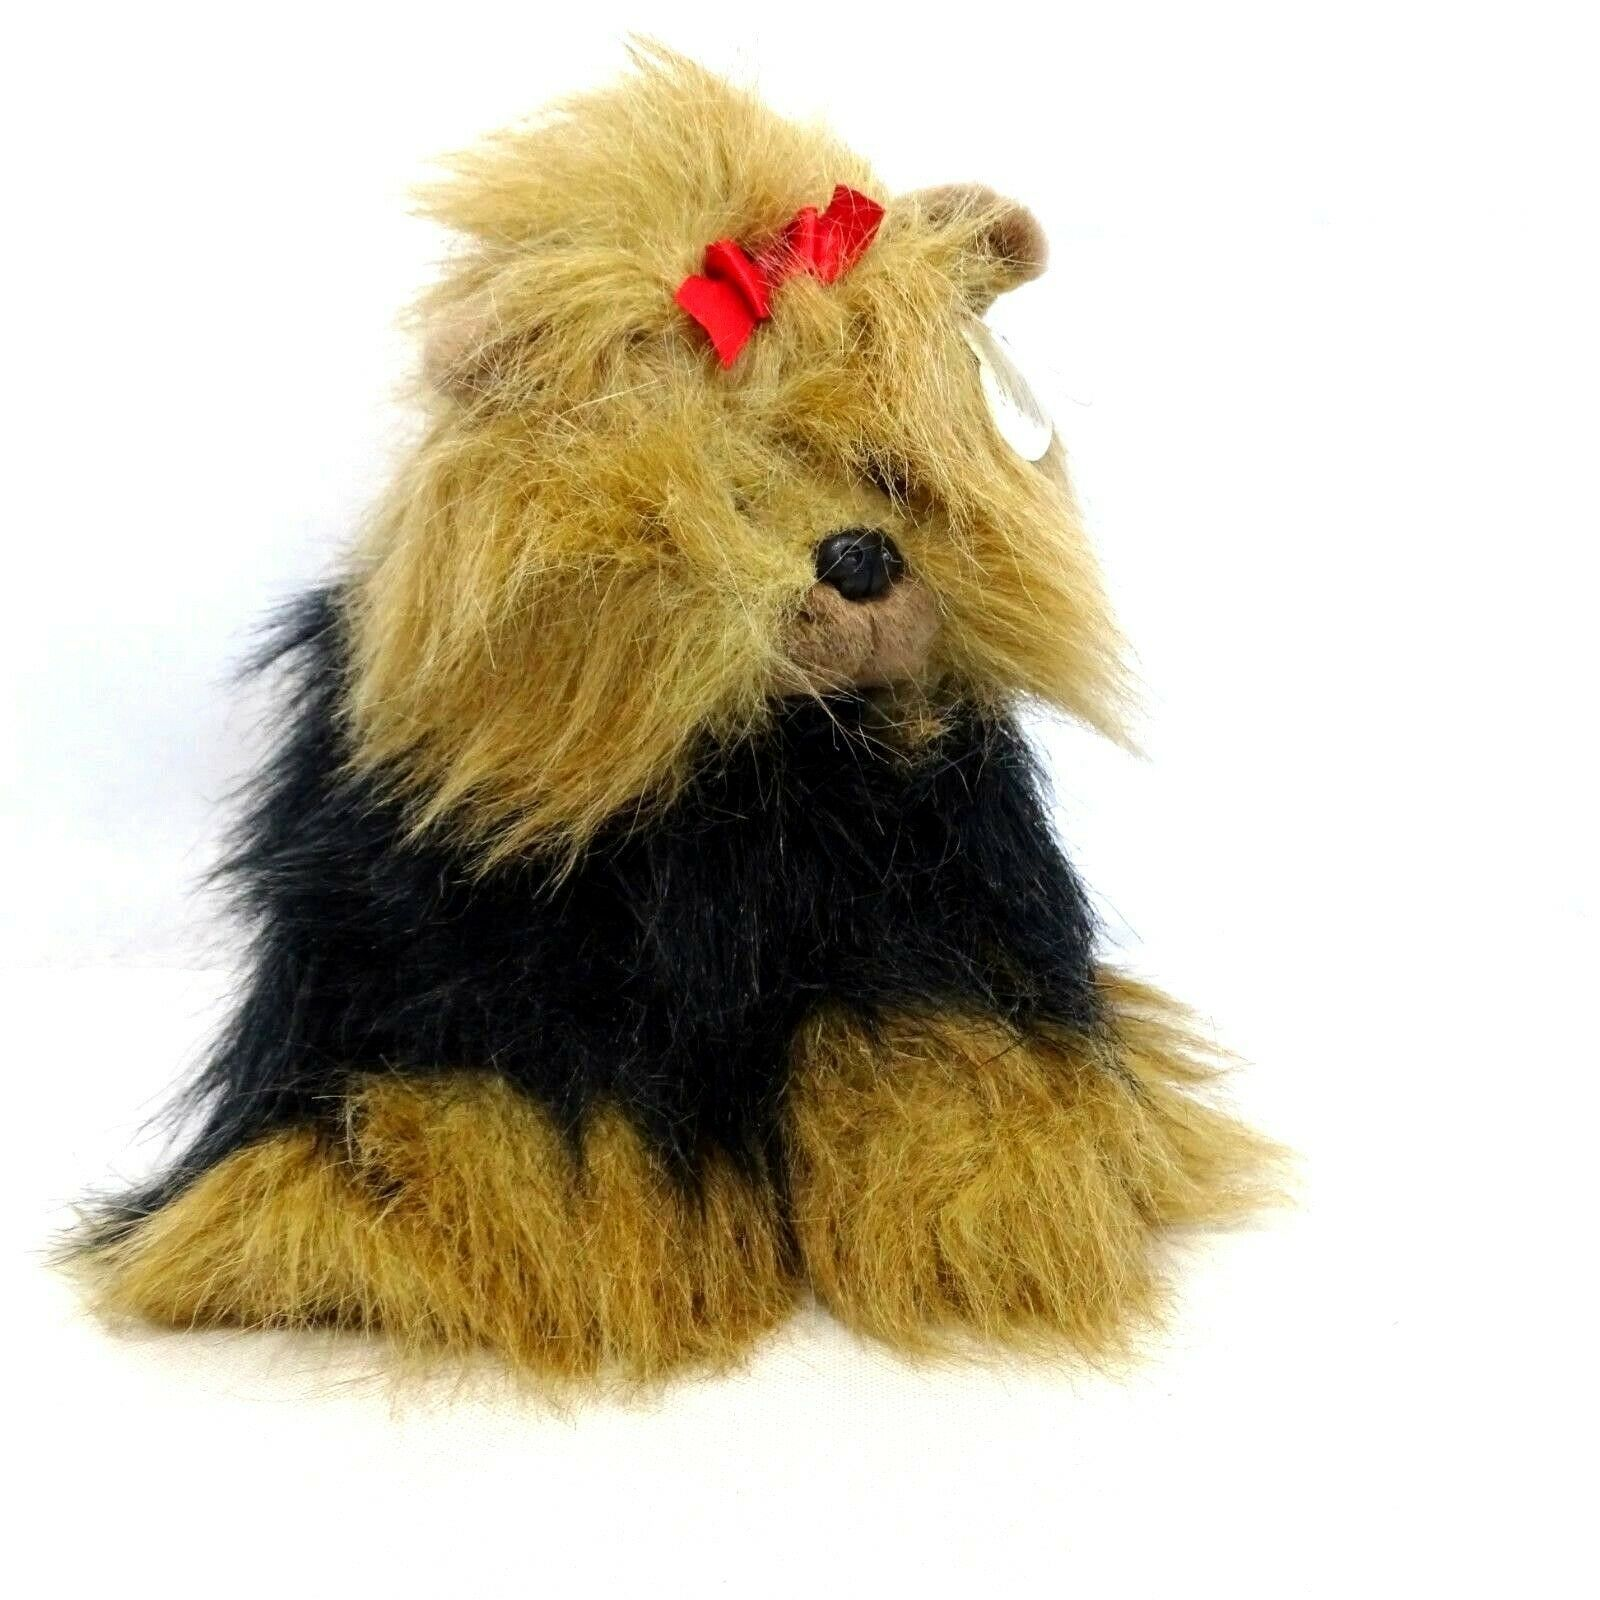 TY Yappy Yorkie Puppy Dog Red Bow Stuffed Animal Plush Toy with Hang Tag Age 3+